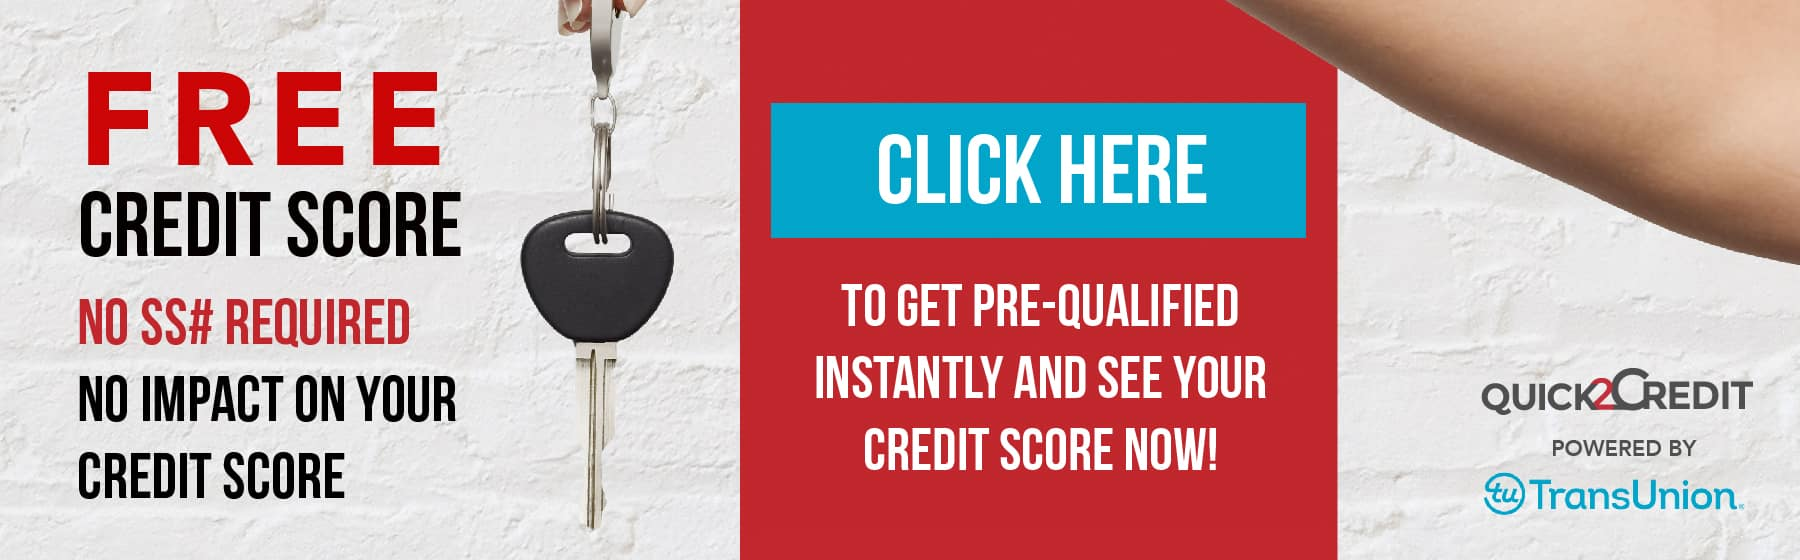 quick2credit homepage